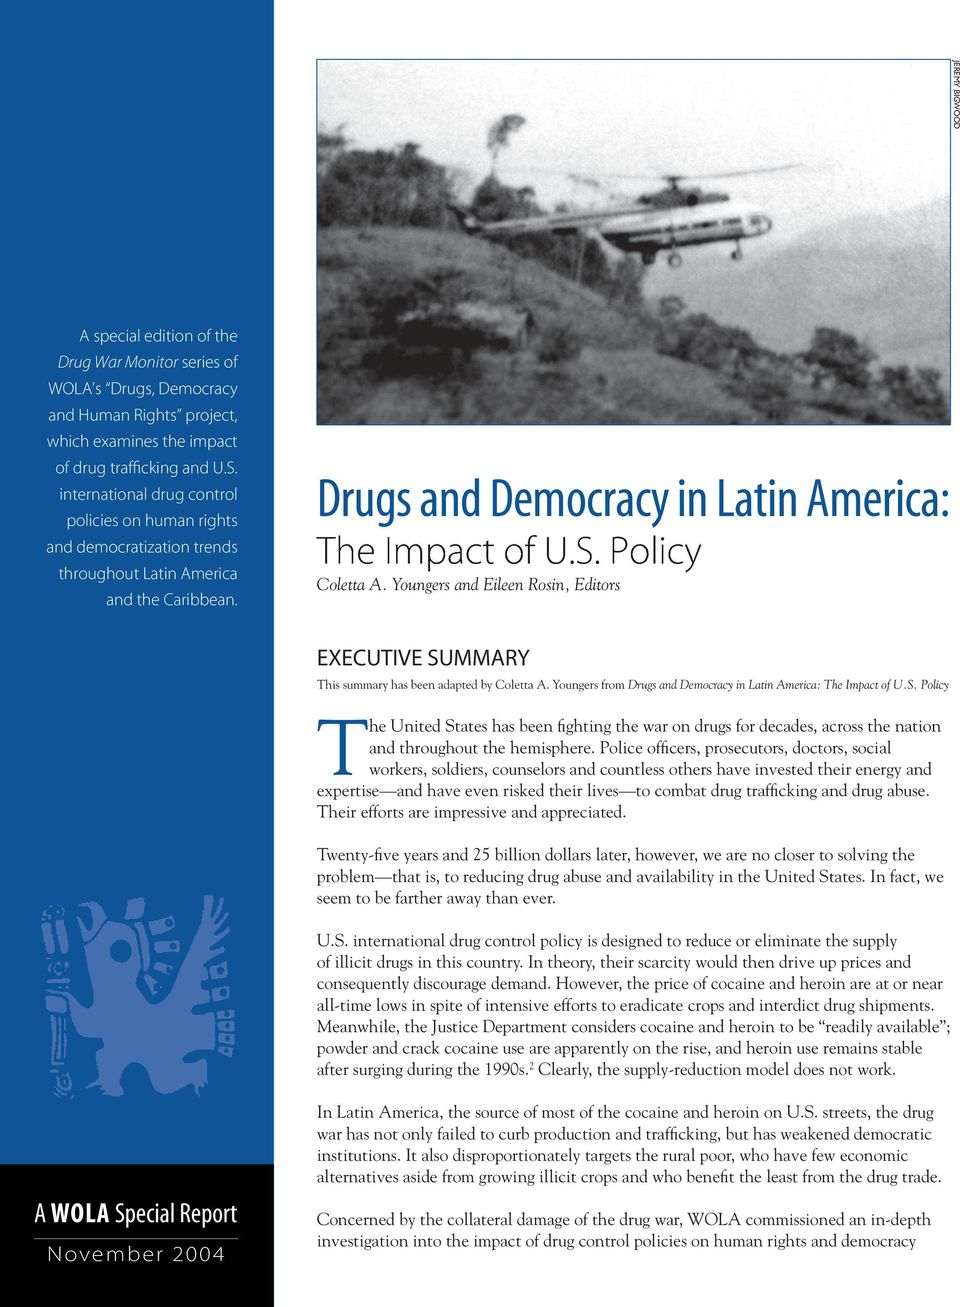 Youngers and Eileen Rosin, Editors EXECUTIVE SUMMARY This summary has been adapted by Coletta A. Youngers from Drugs and Democracy in Latin America: The Impact of U.S. Policy The United States has been fi ghting the war on drugs for decades, across the nation and throughout the hemisphere.